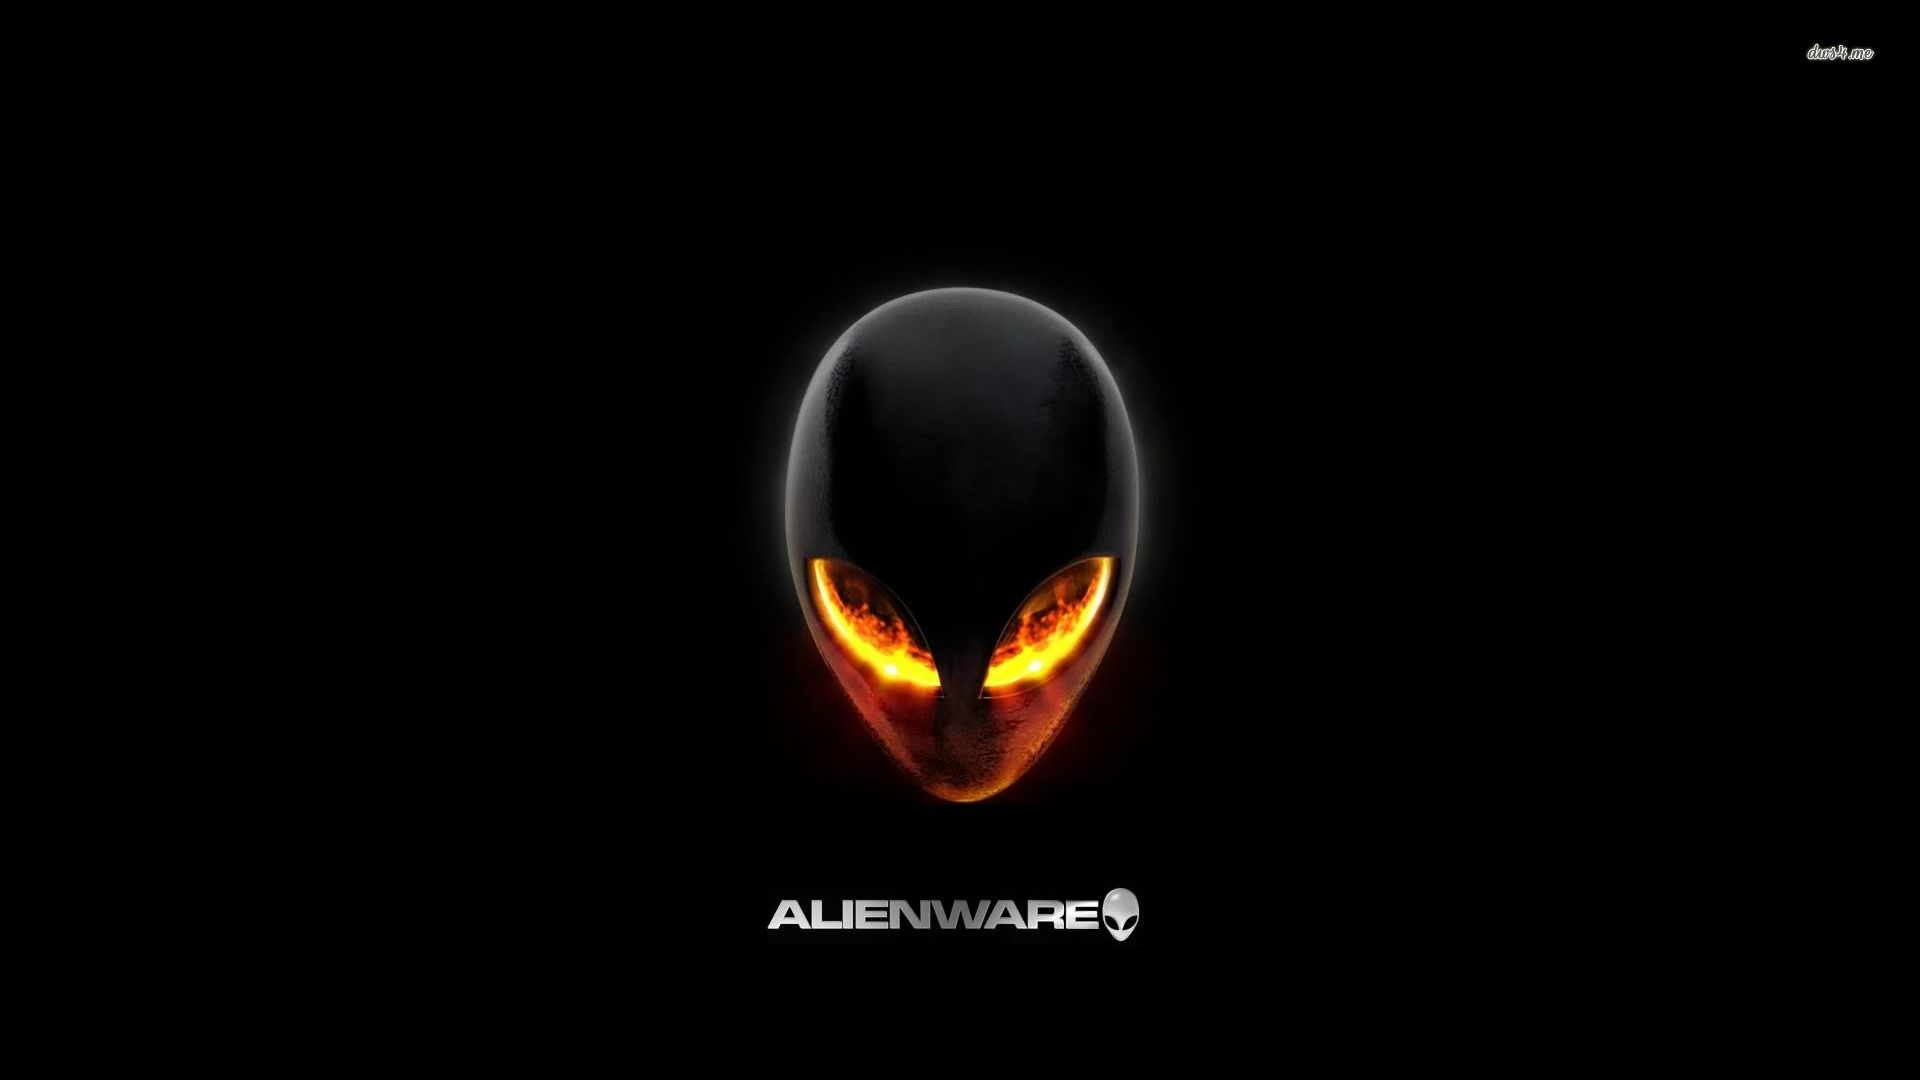 4K Alienware Wallpaper Technology wallpaper, Cool